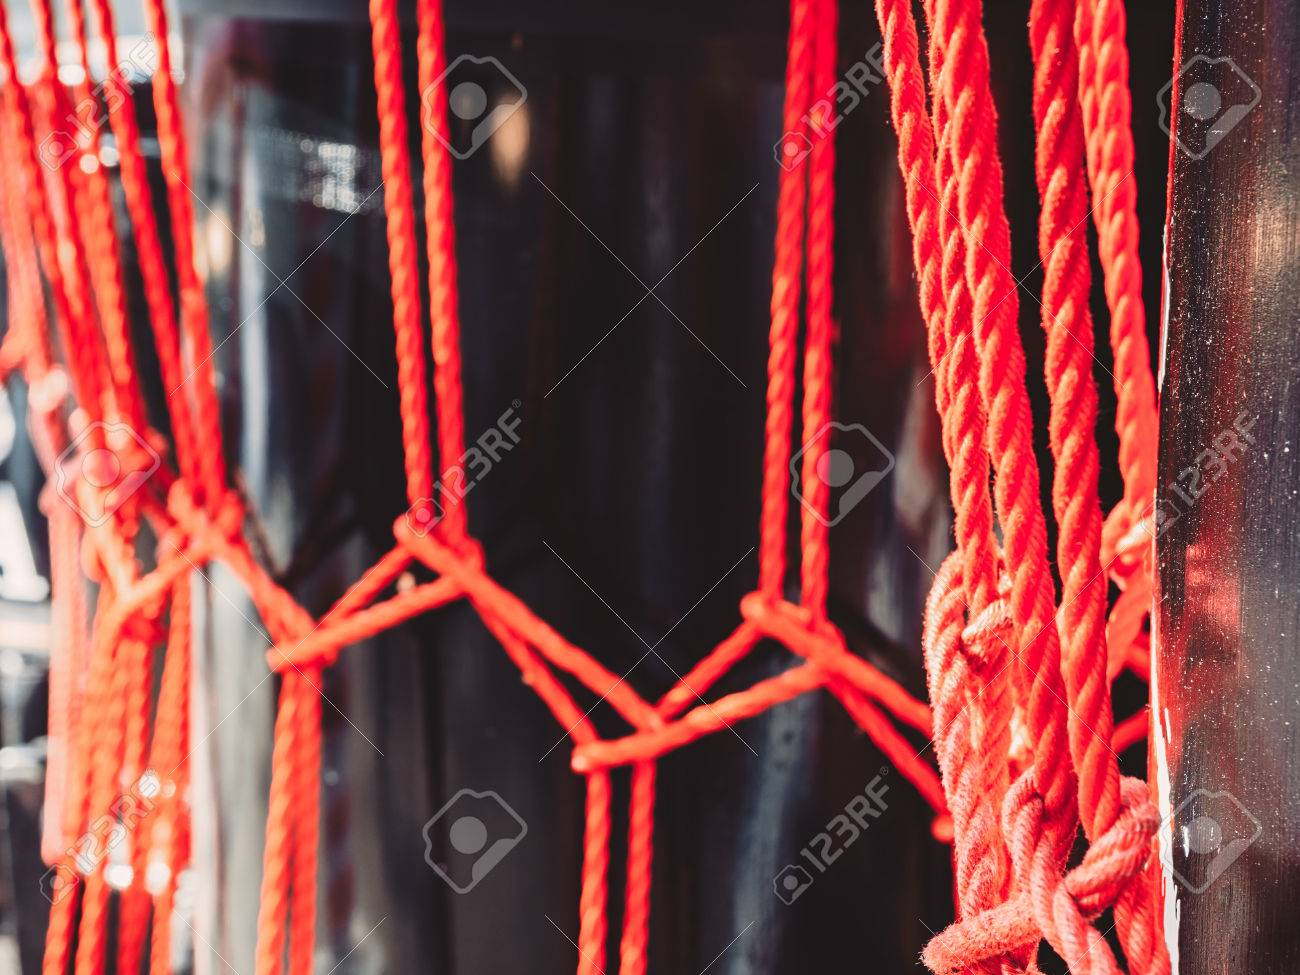 Knots From Red Ropes Of Taiko Drums O kedo Close Up Background 1300x975